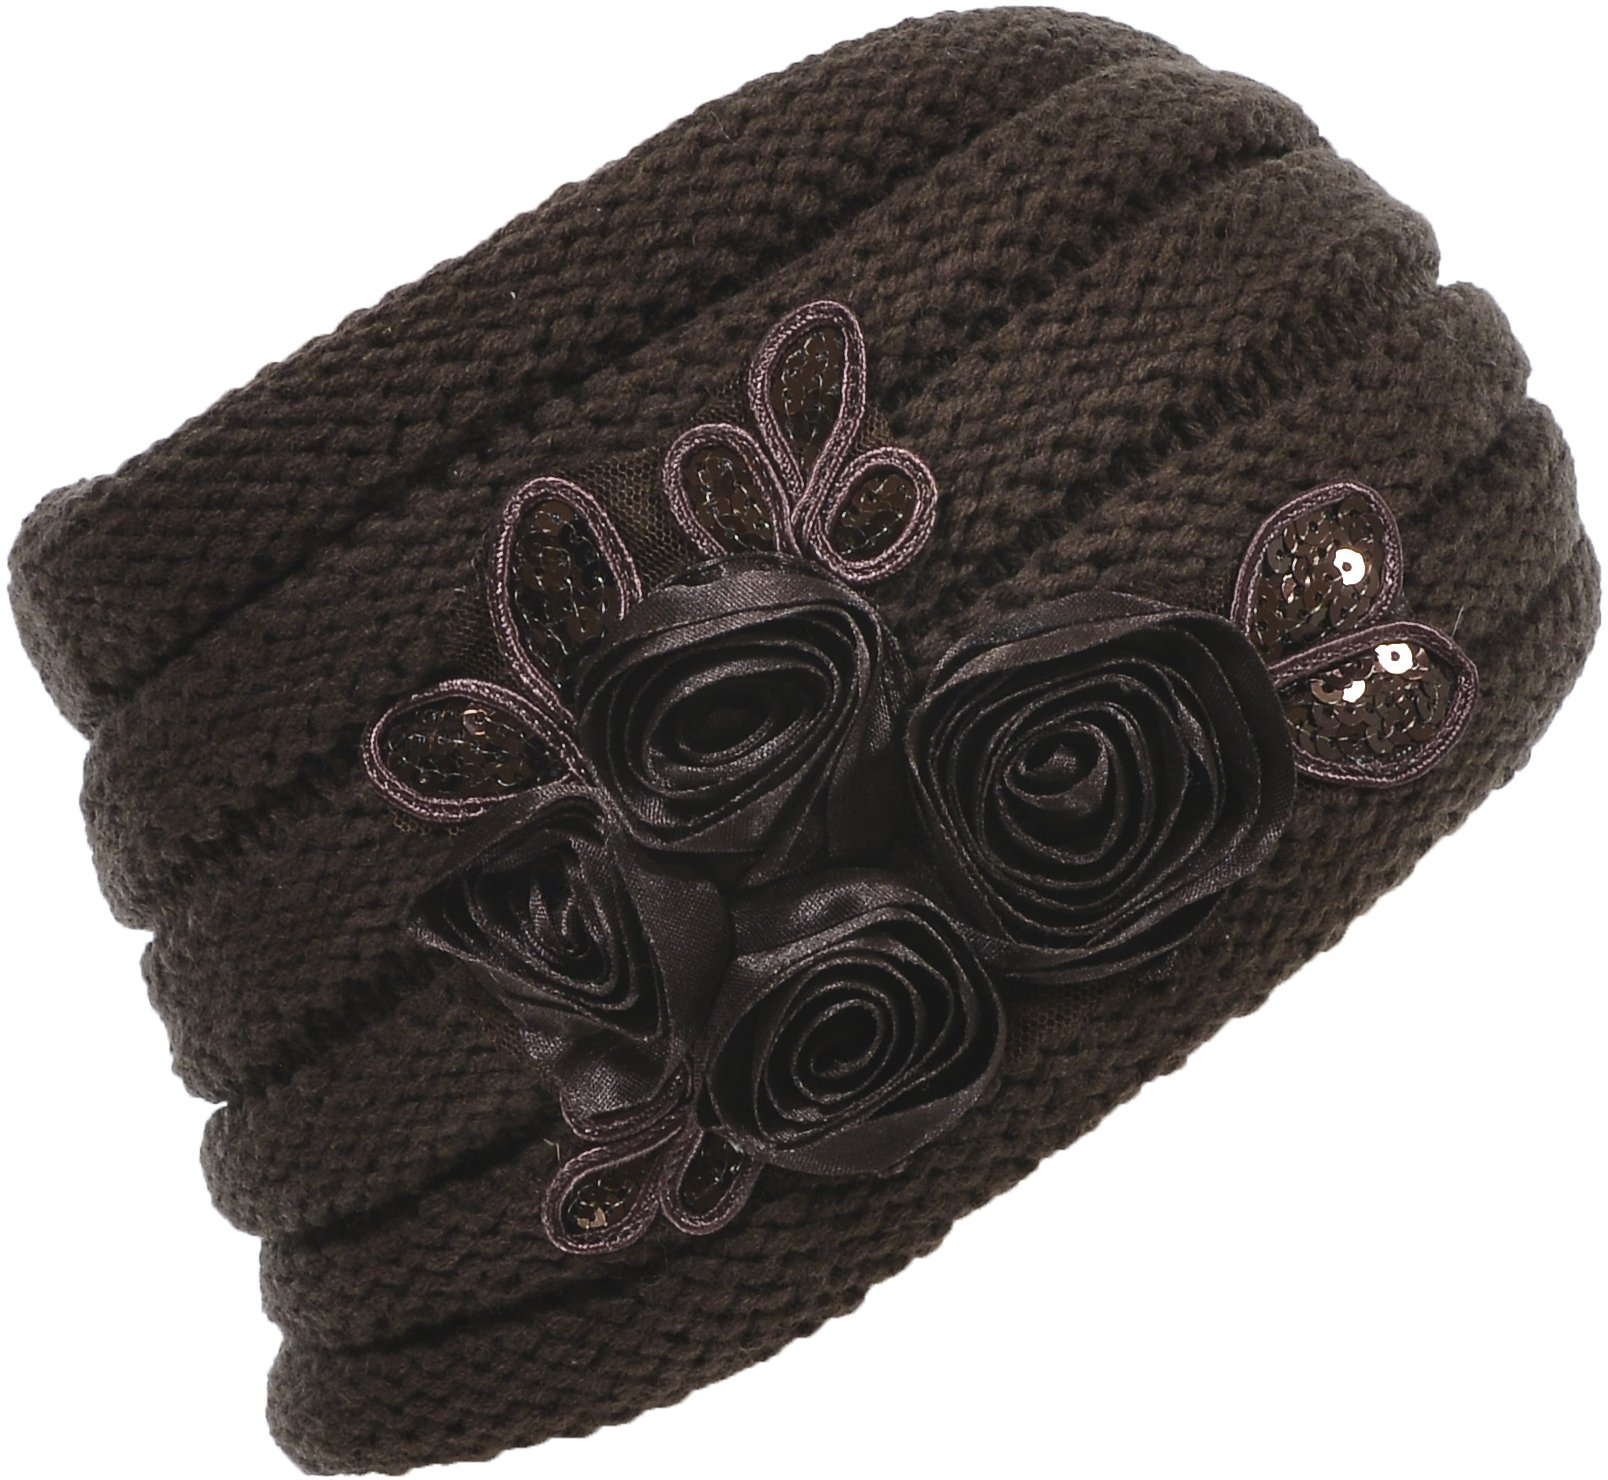 Hand By Hand Aprileo Women's Floral Knitted Headband Sequins Satin Headwrap [Brown.](One Size)